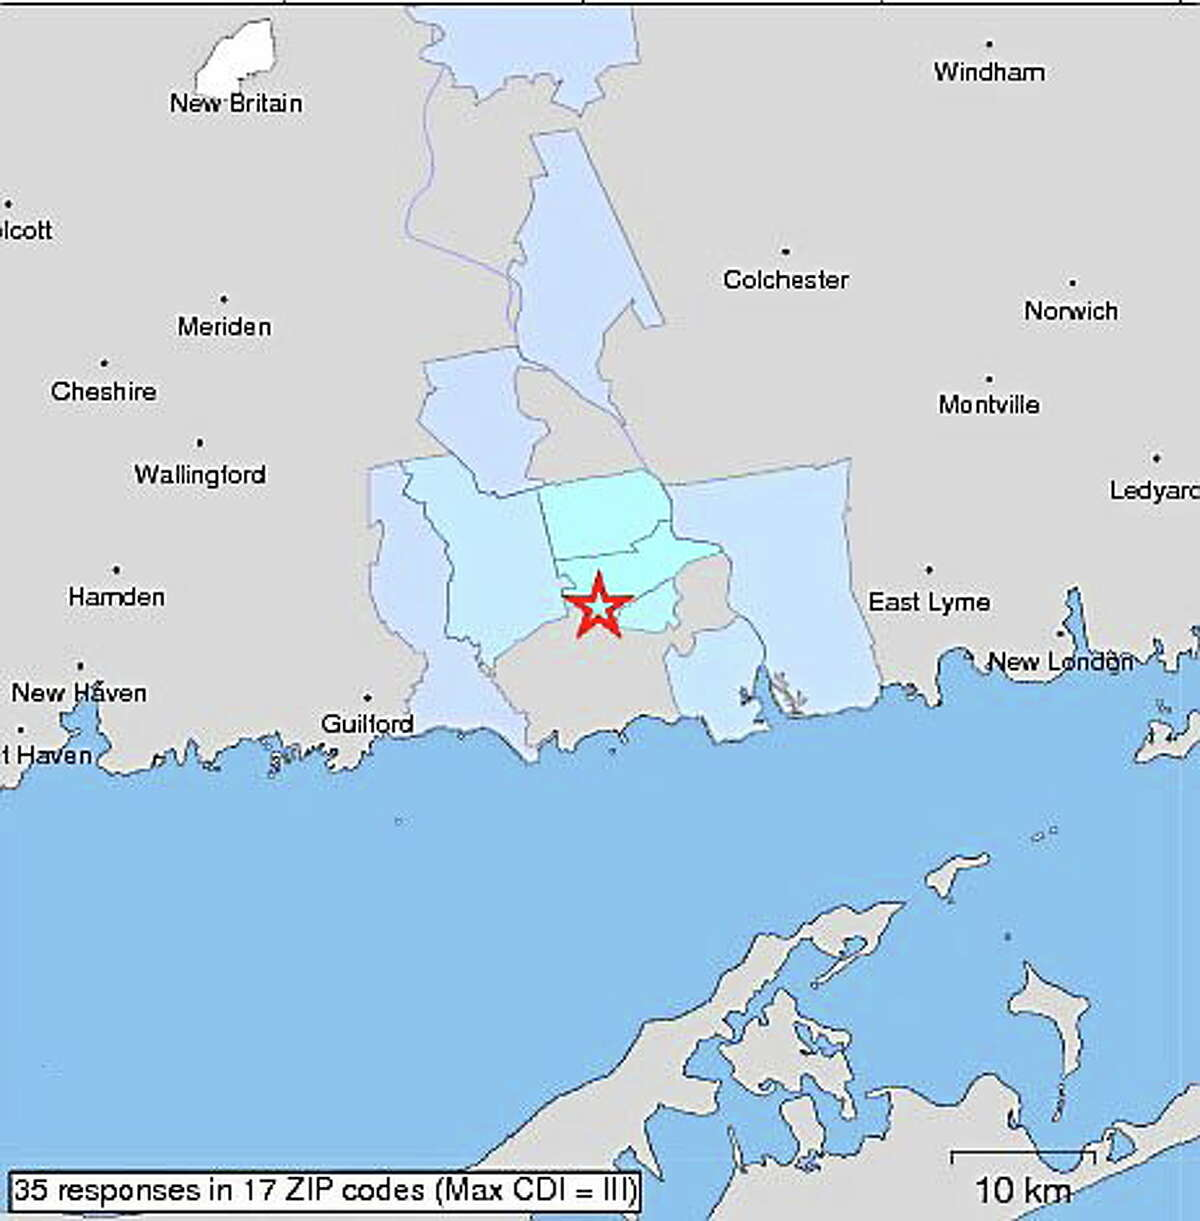 The U.S. Geological Survey confirmed there was a 2.7 magnitude earthquake Thursday morning in Deep River.